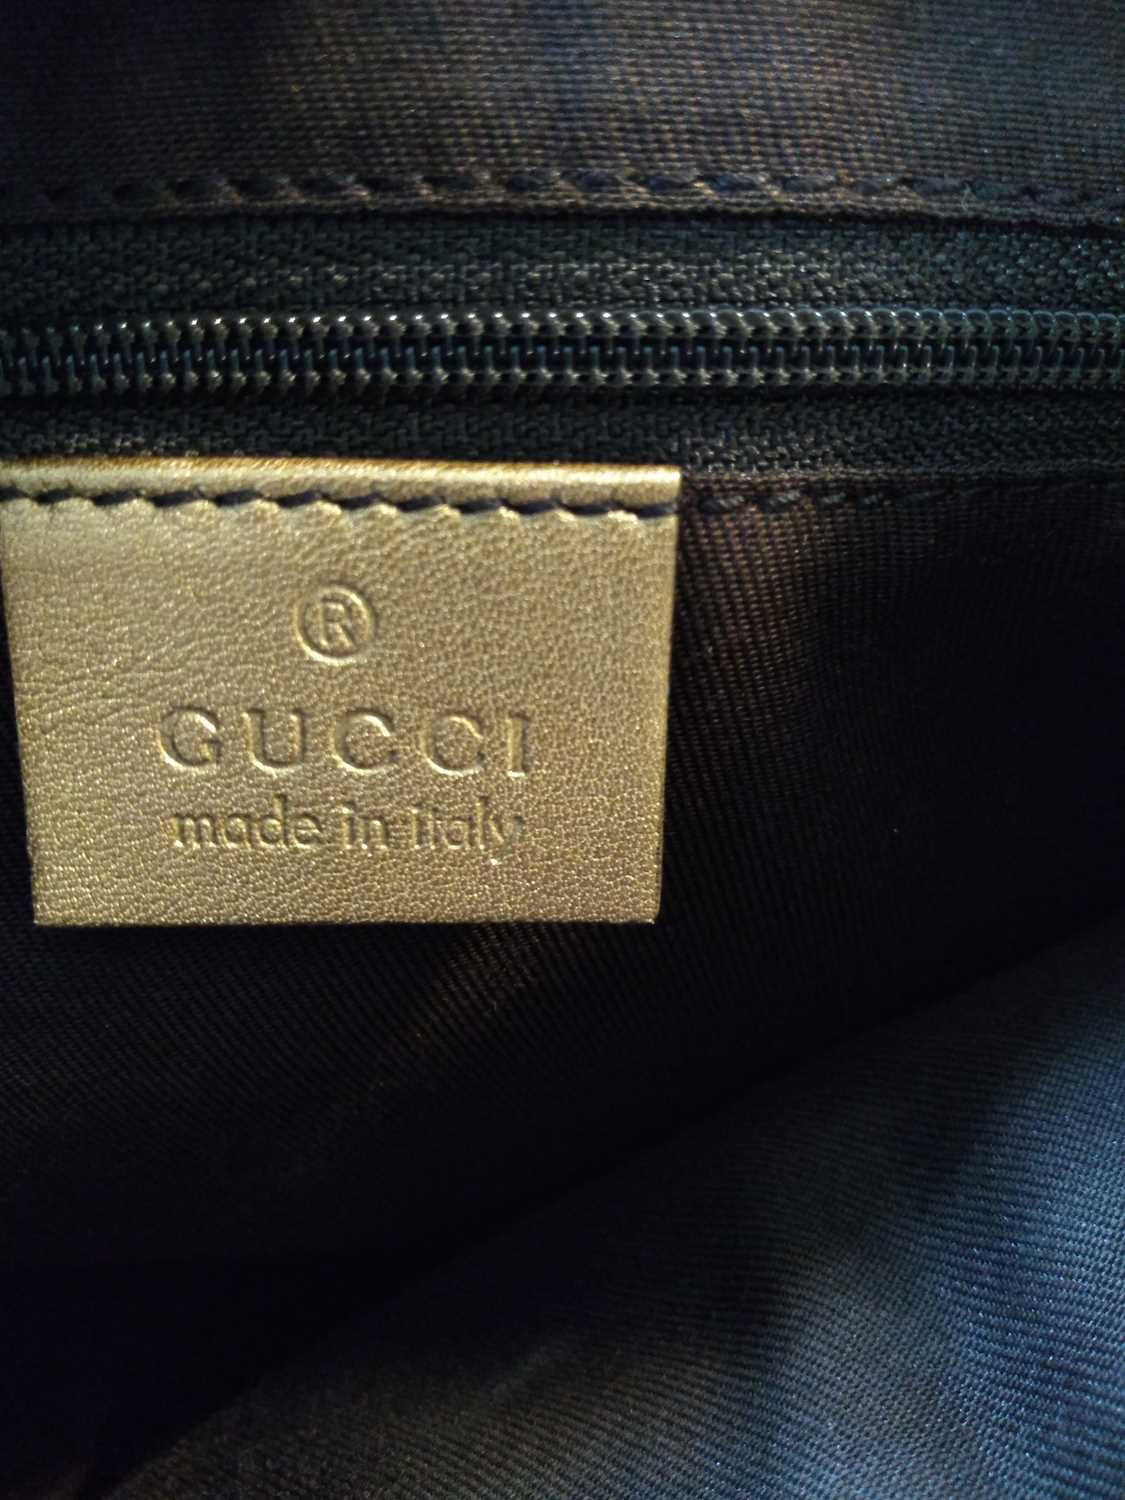 A Gucci gold crystal coated canvas D-ring hobo bag, - Image 3 of 7